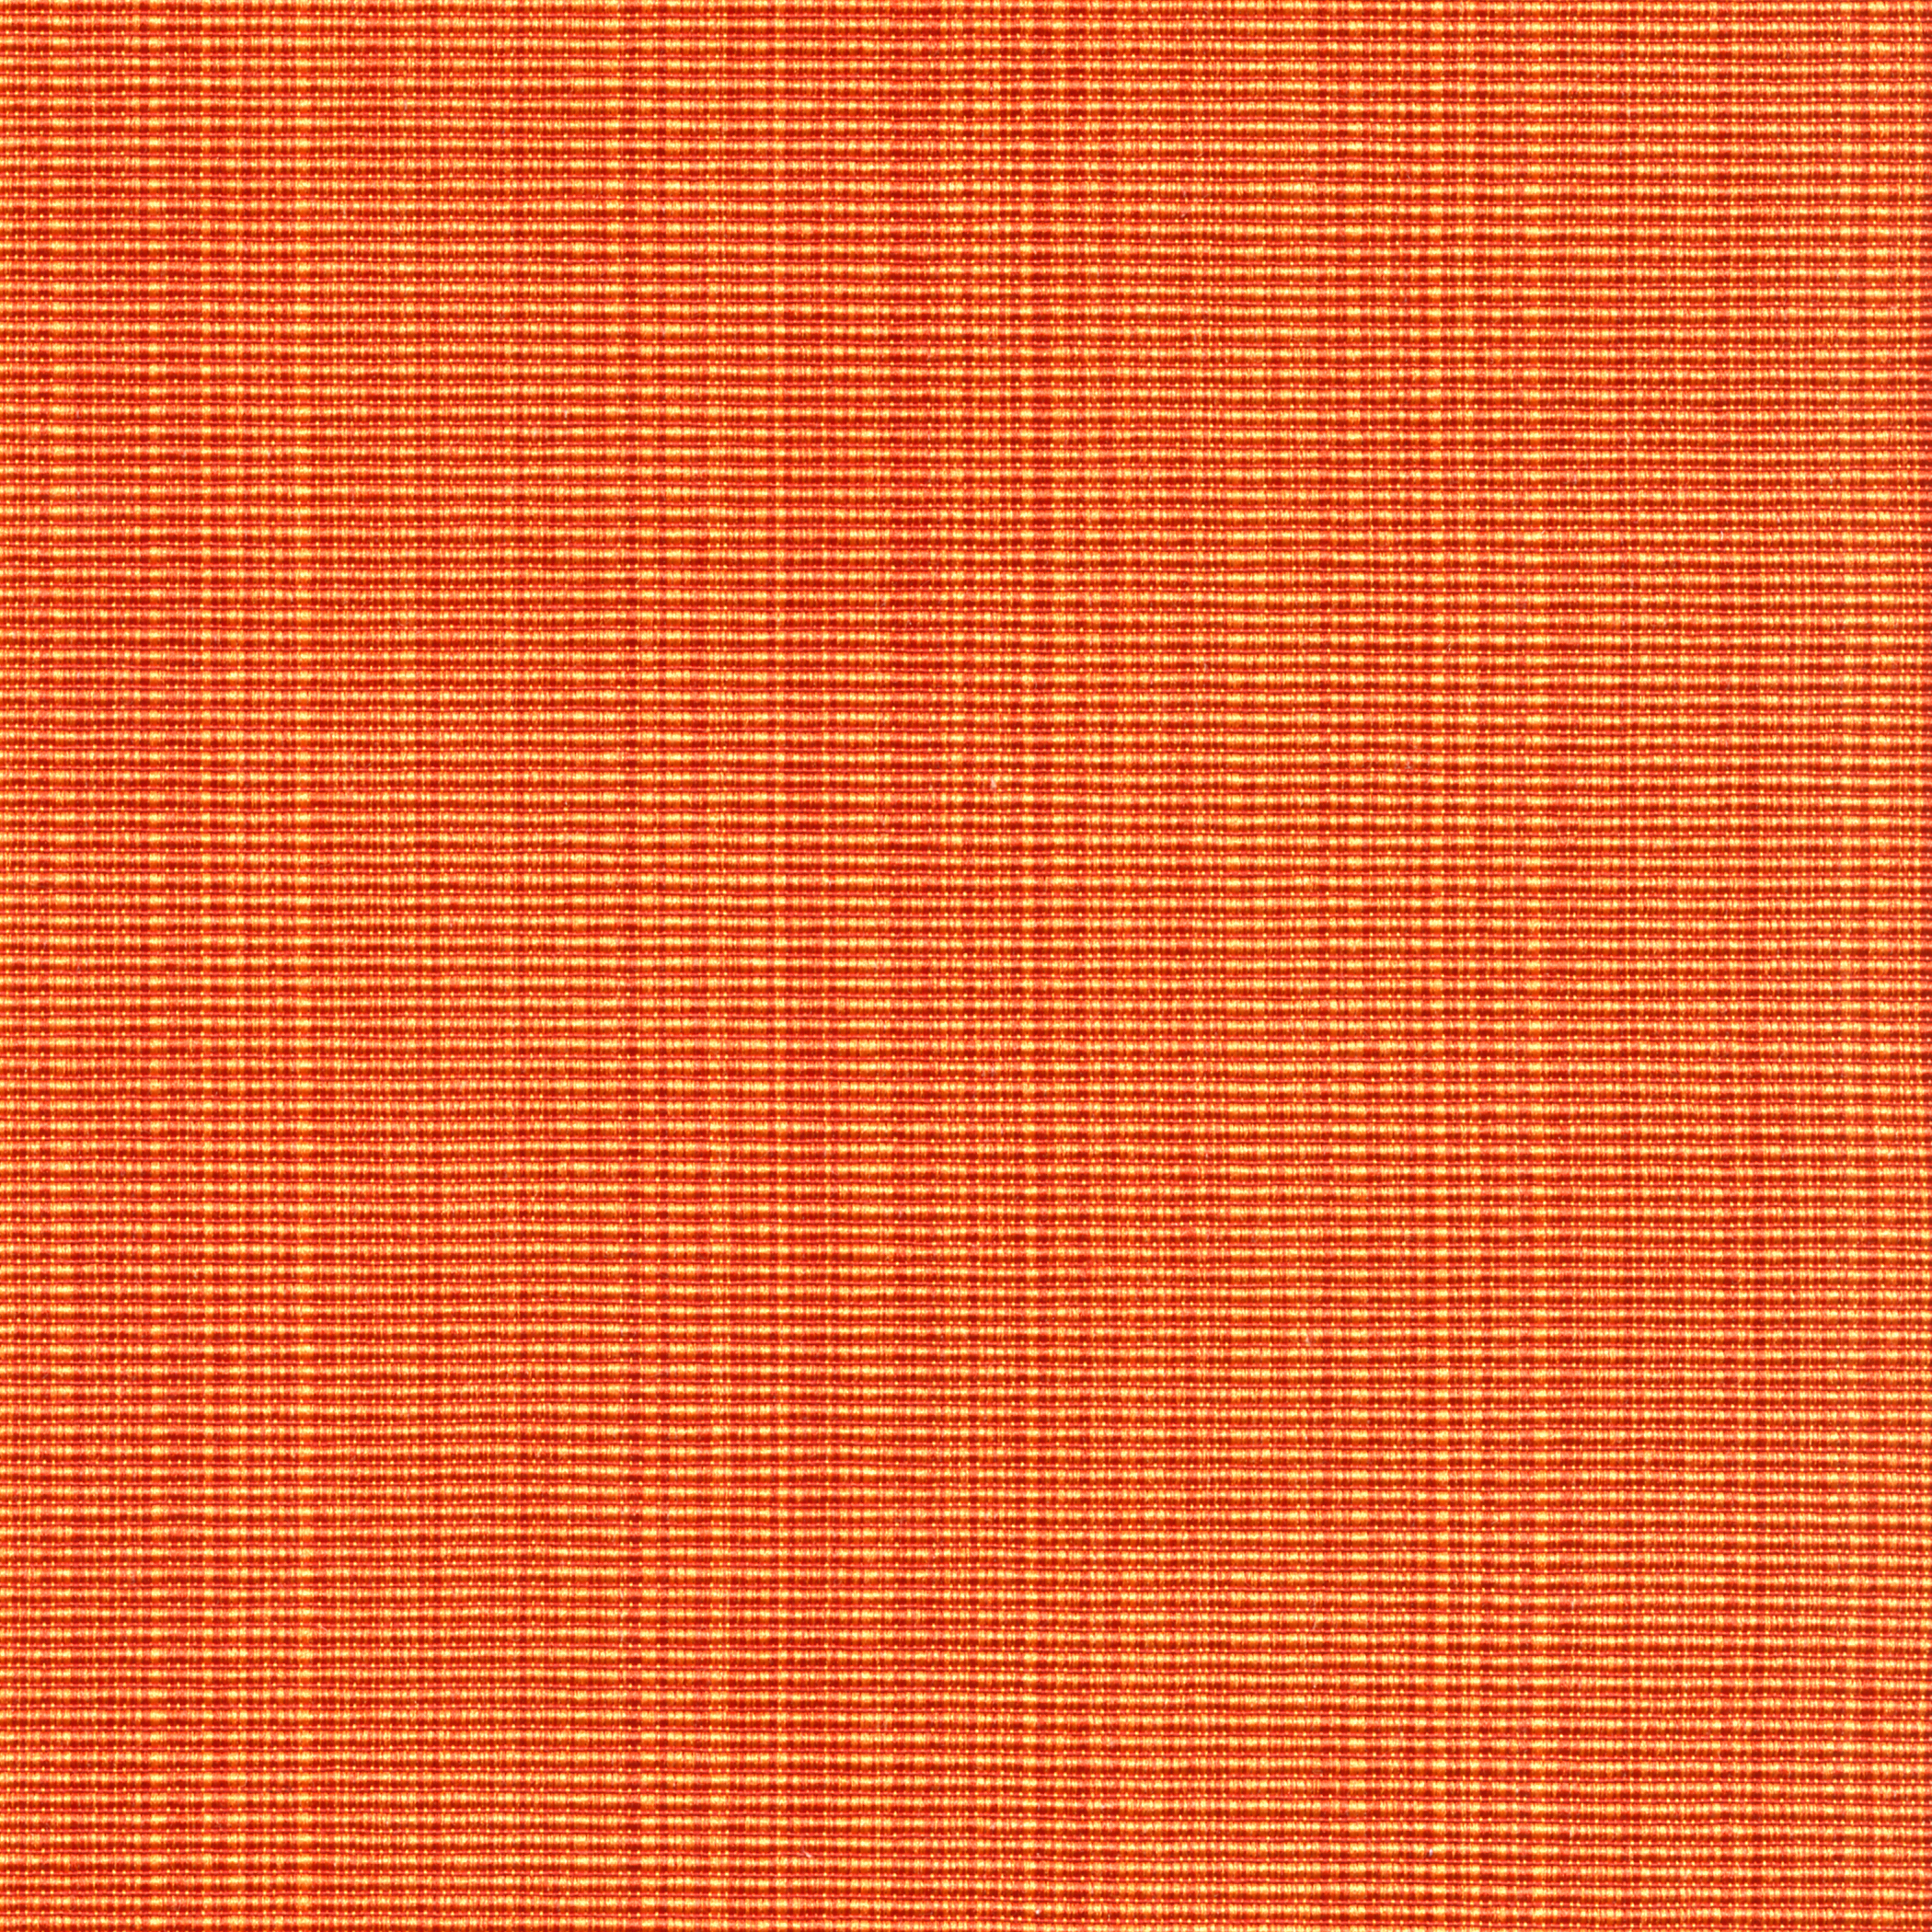 Grosgrain Hems Orange Muted Woven Upholstery Fabric